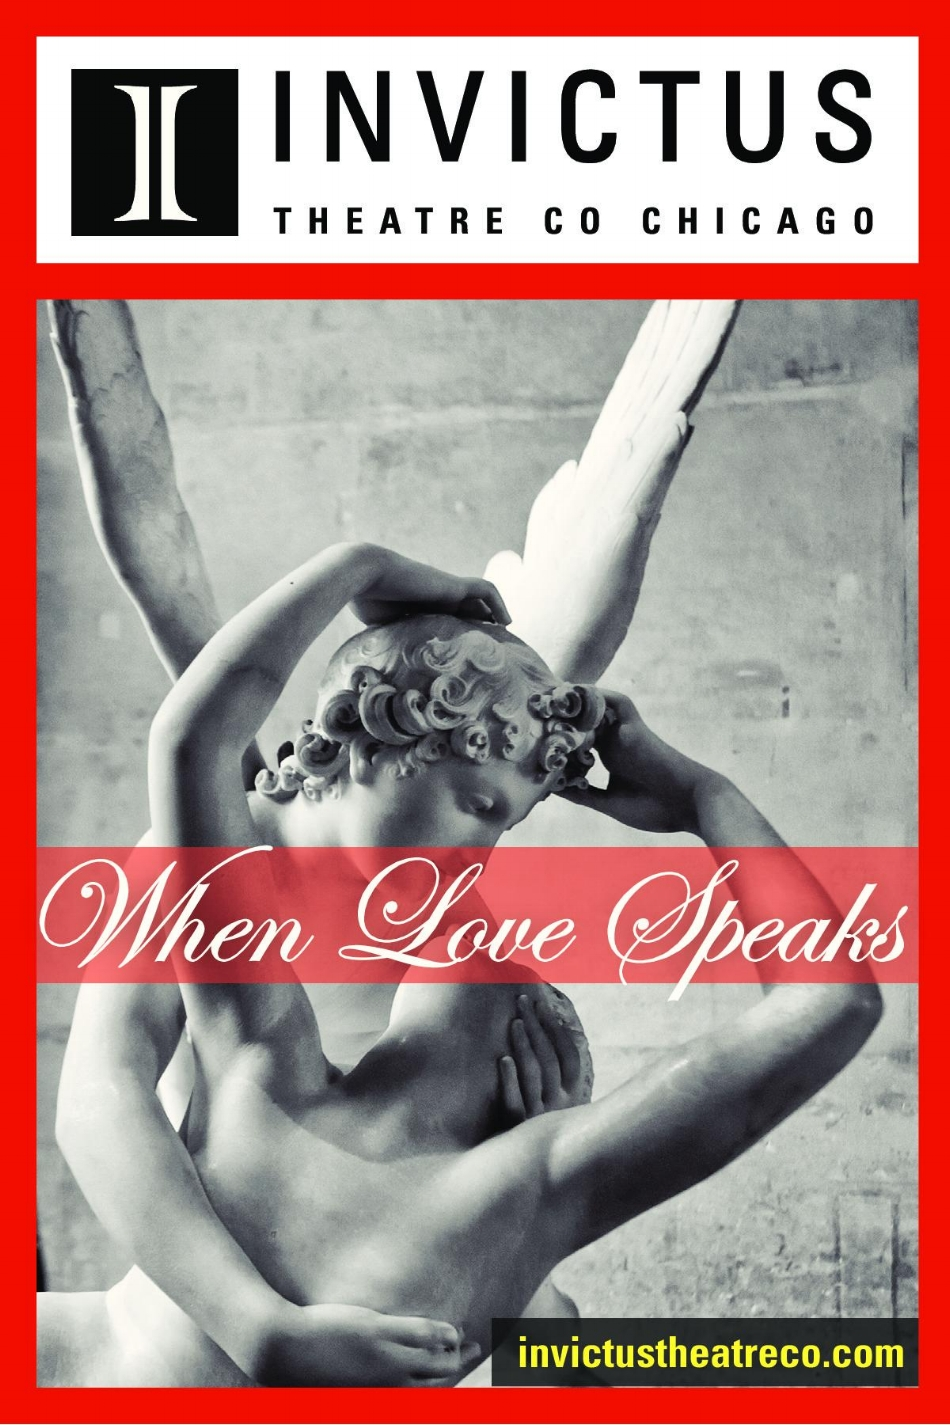 When Love Speaks  - ****Two Performances: June 2 @ 8pm, and June 3 @ 2pm******Wish you to bathe your lips in rosy dews of kisses? Then come on down to Invictus Theatre Co. Chicago's